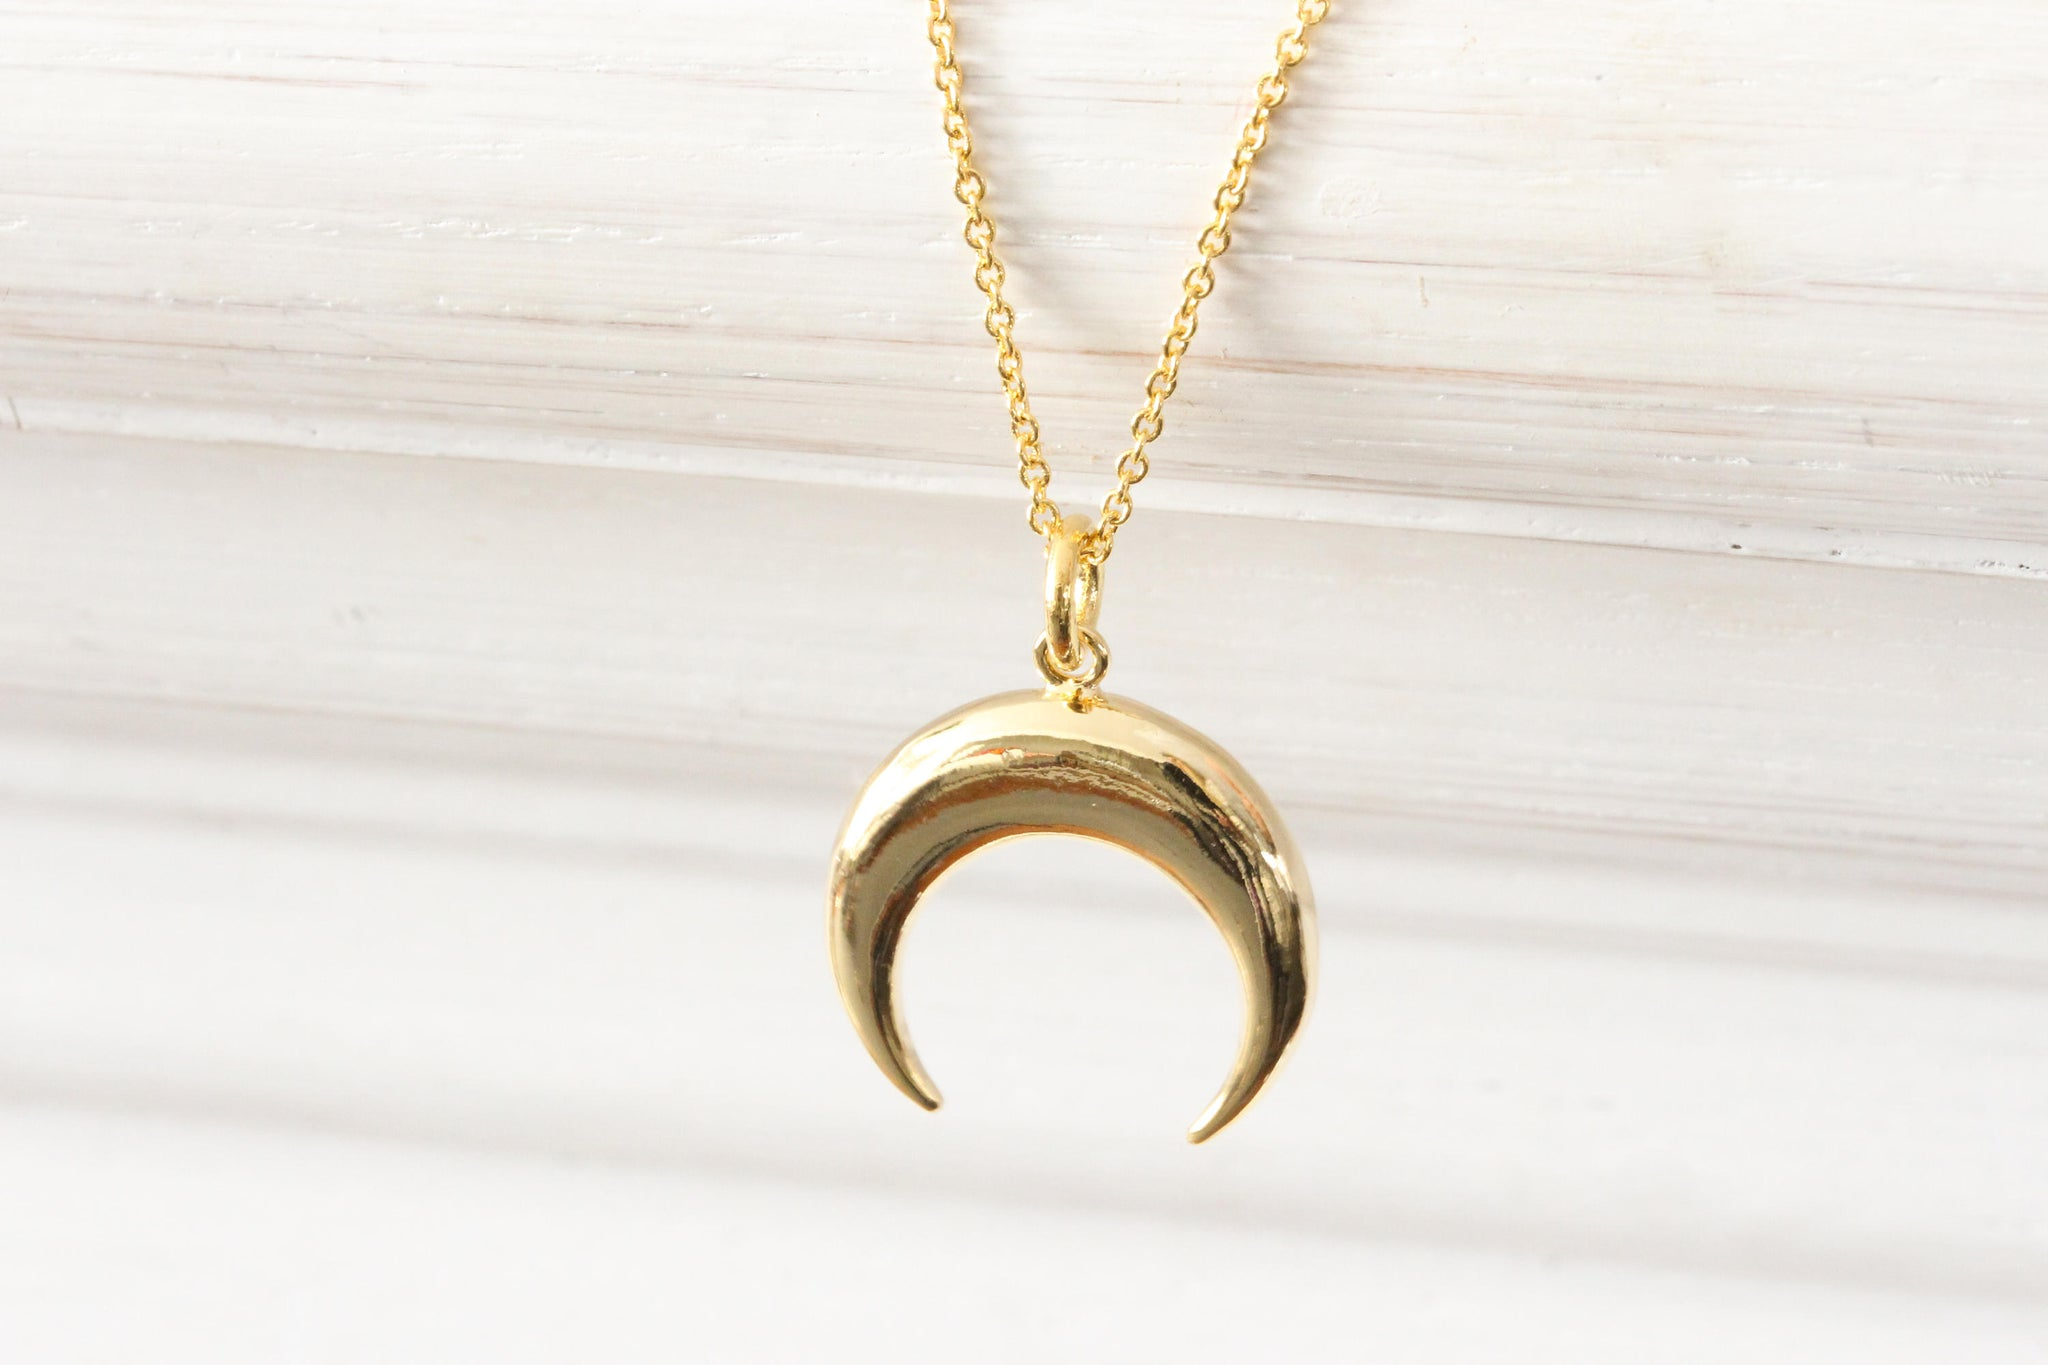 Gold Moon Pendant Crescent Moon Charm Moon Phase Necklace, New Moon, Tiny Dainty Minimalist Simple Delicate Everyday Gift for her - product_type] - Beautiz